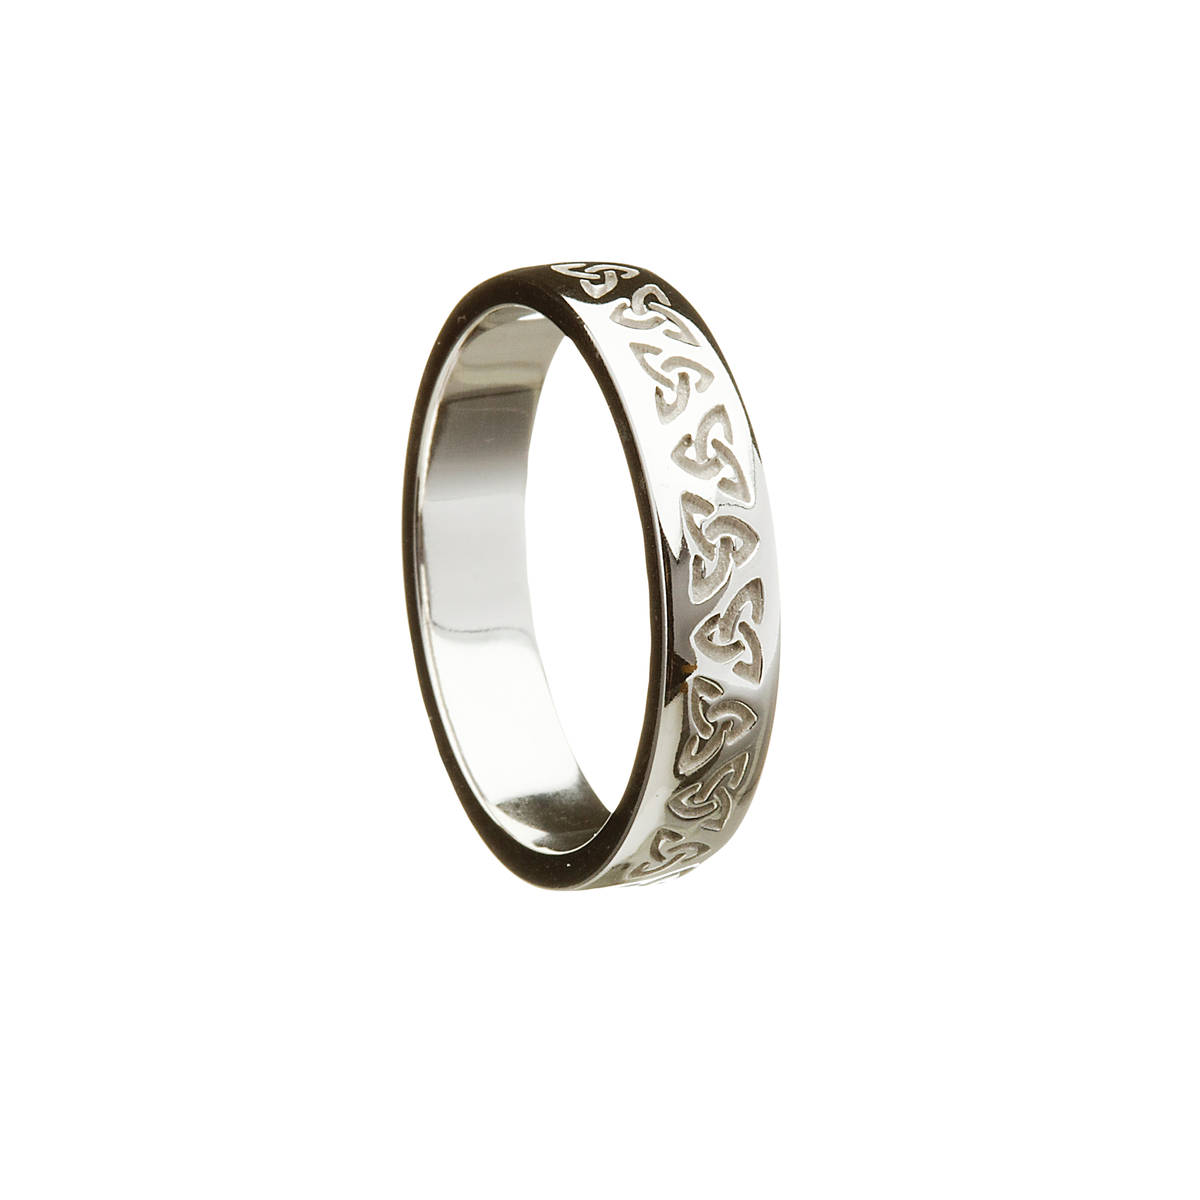 10 carat white gold man's etched trinity knot repeating design ring.Unique design will impress.If required in yellow gold or in rose gold, just leave a note in the comment box at the checkout page.